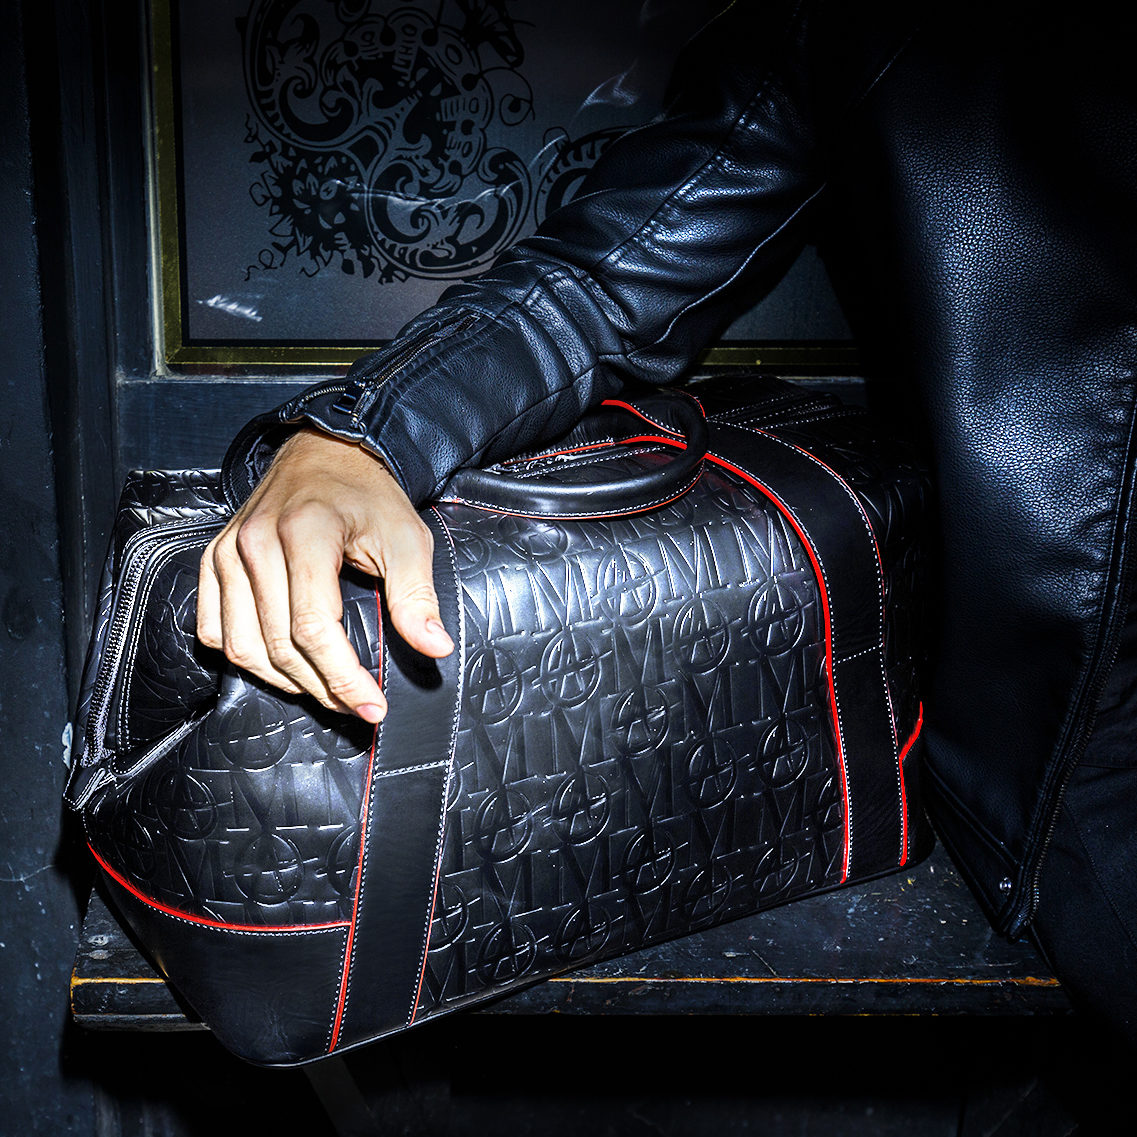 Monarchy London, Luxury Leather Goods for Stylish Gentlemen. Men's leather bags, wallets and accessories, made by hand.